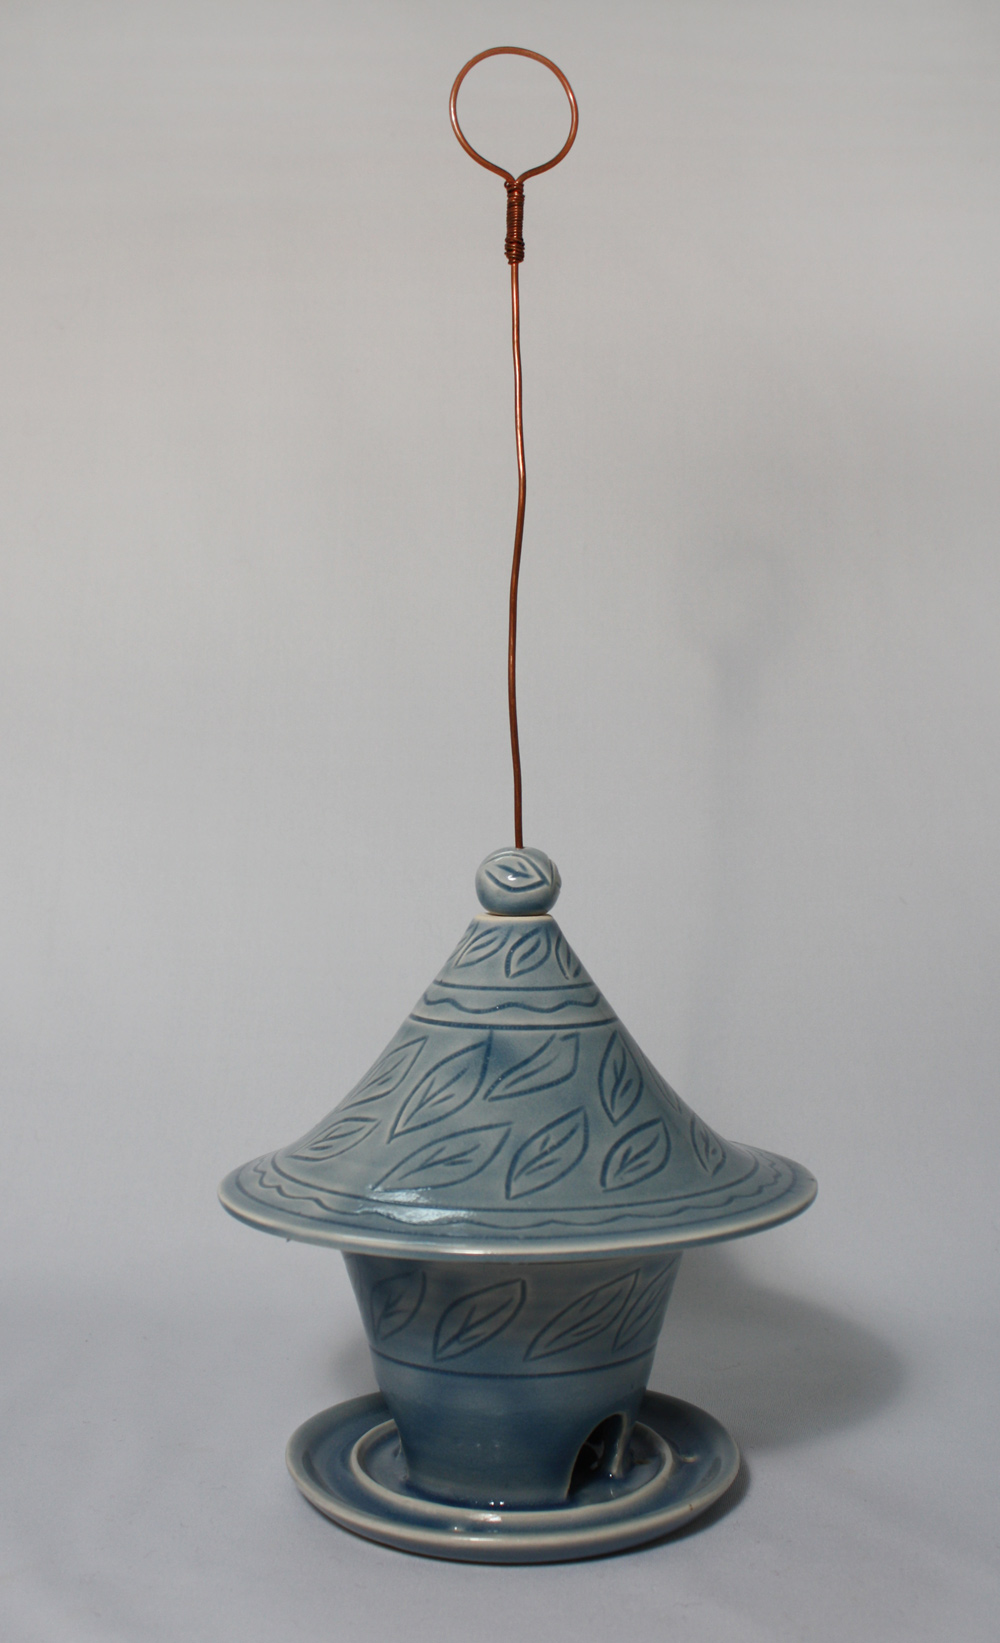 Sky blue bird feeder, SOLD. To purchase, please   CONTACT ME.